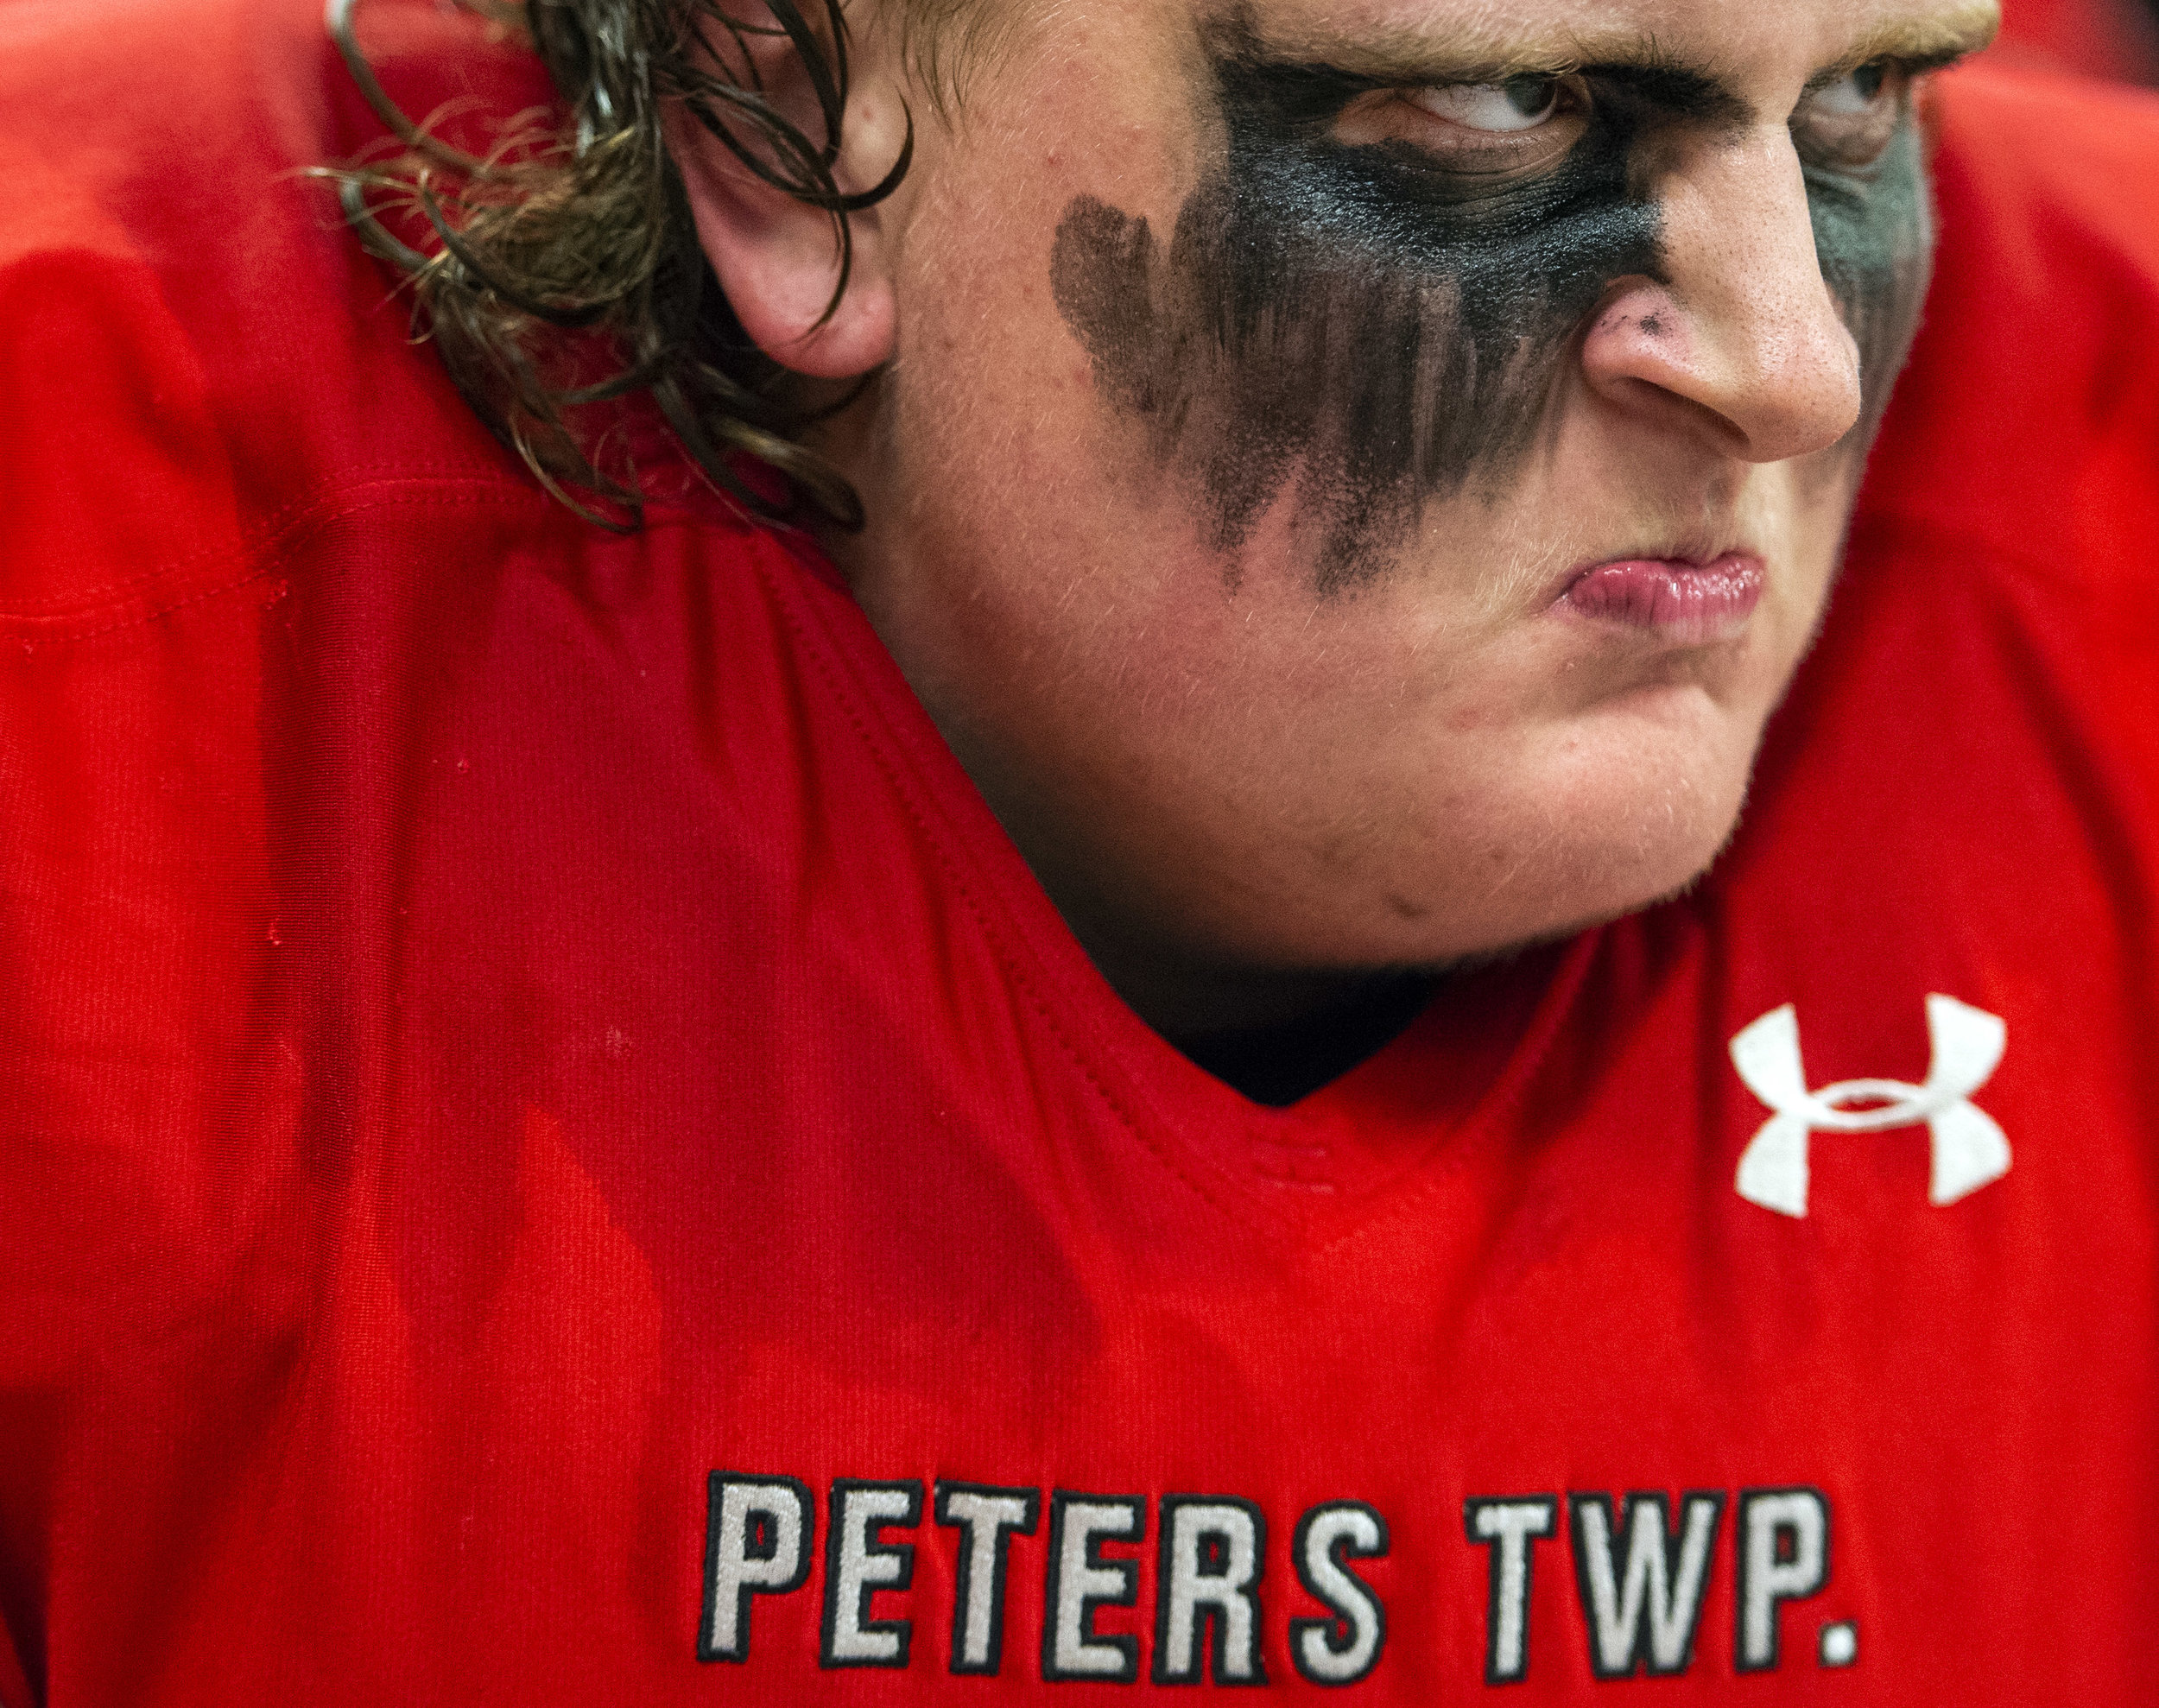 Peters Township's Robert Corrado gets fired up while listening to a pregame speech by head coach T.J. Plack before playing Bethel Park on Friday, Oct. 19, 2018, at Peters Township High School. (Steph Chambers/Post-Gazette)